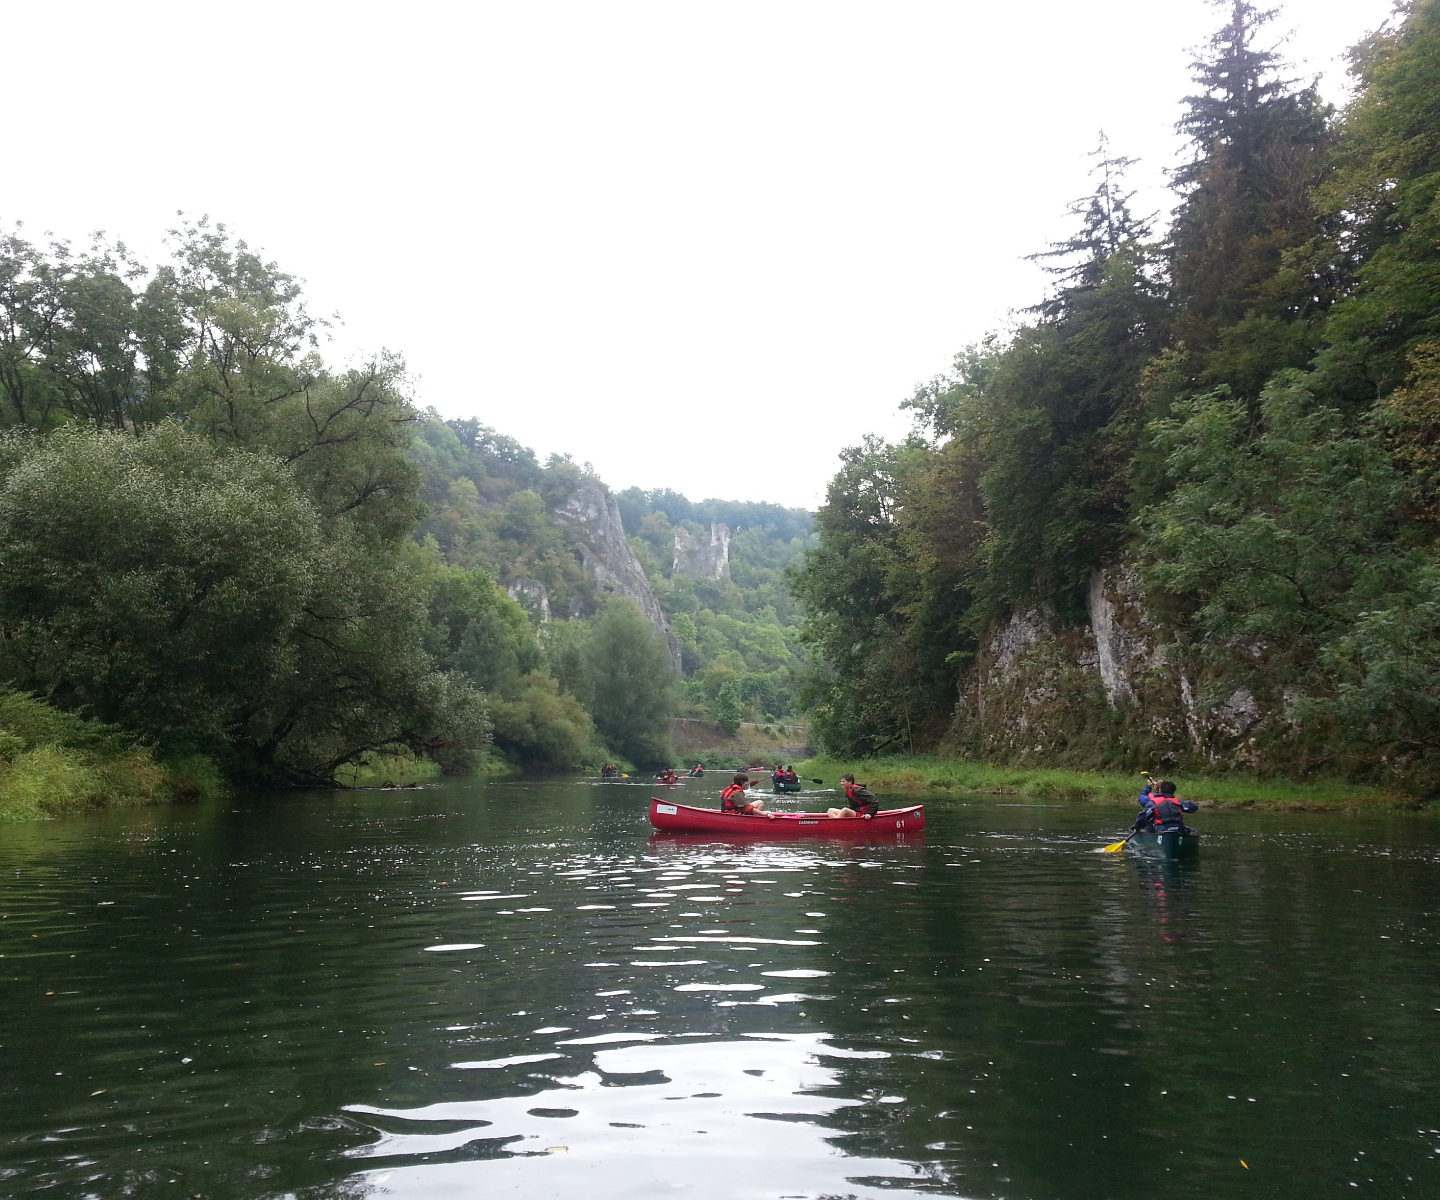 Danube Canoeing September 2013